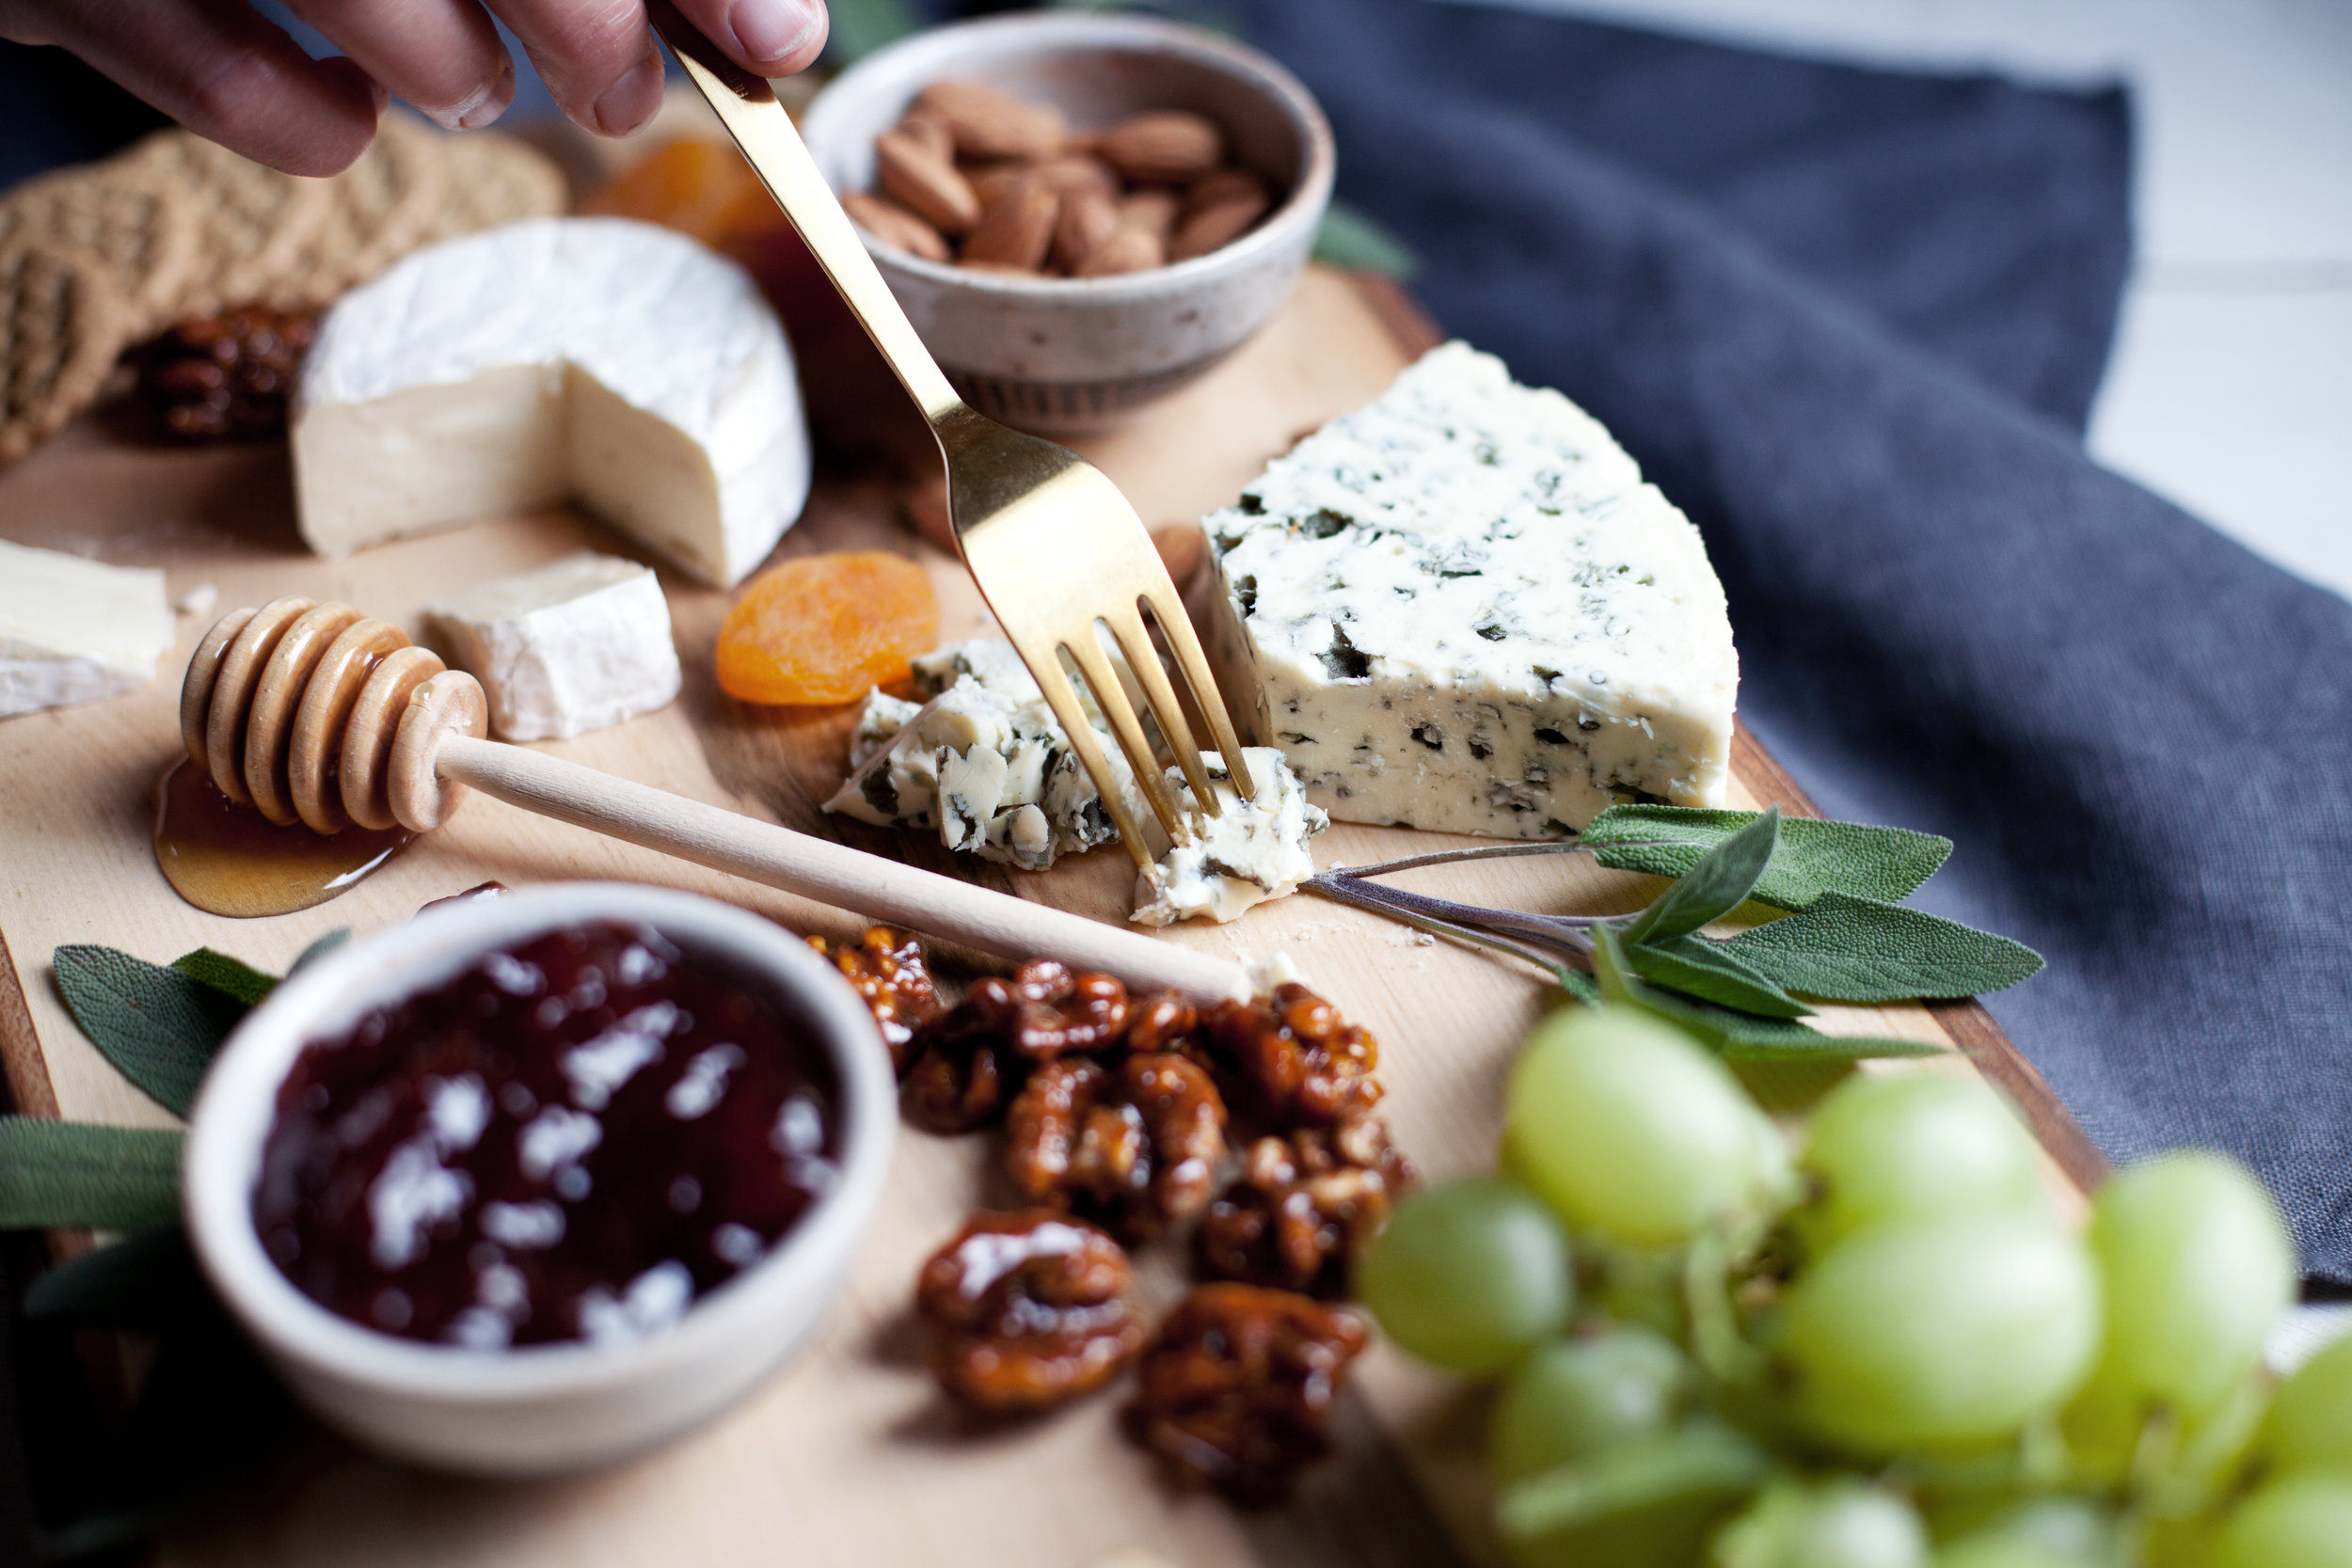 castello sweet cheese board viii.jpg